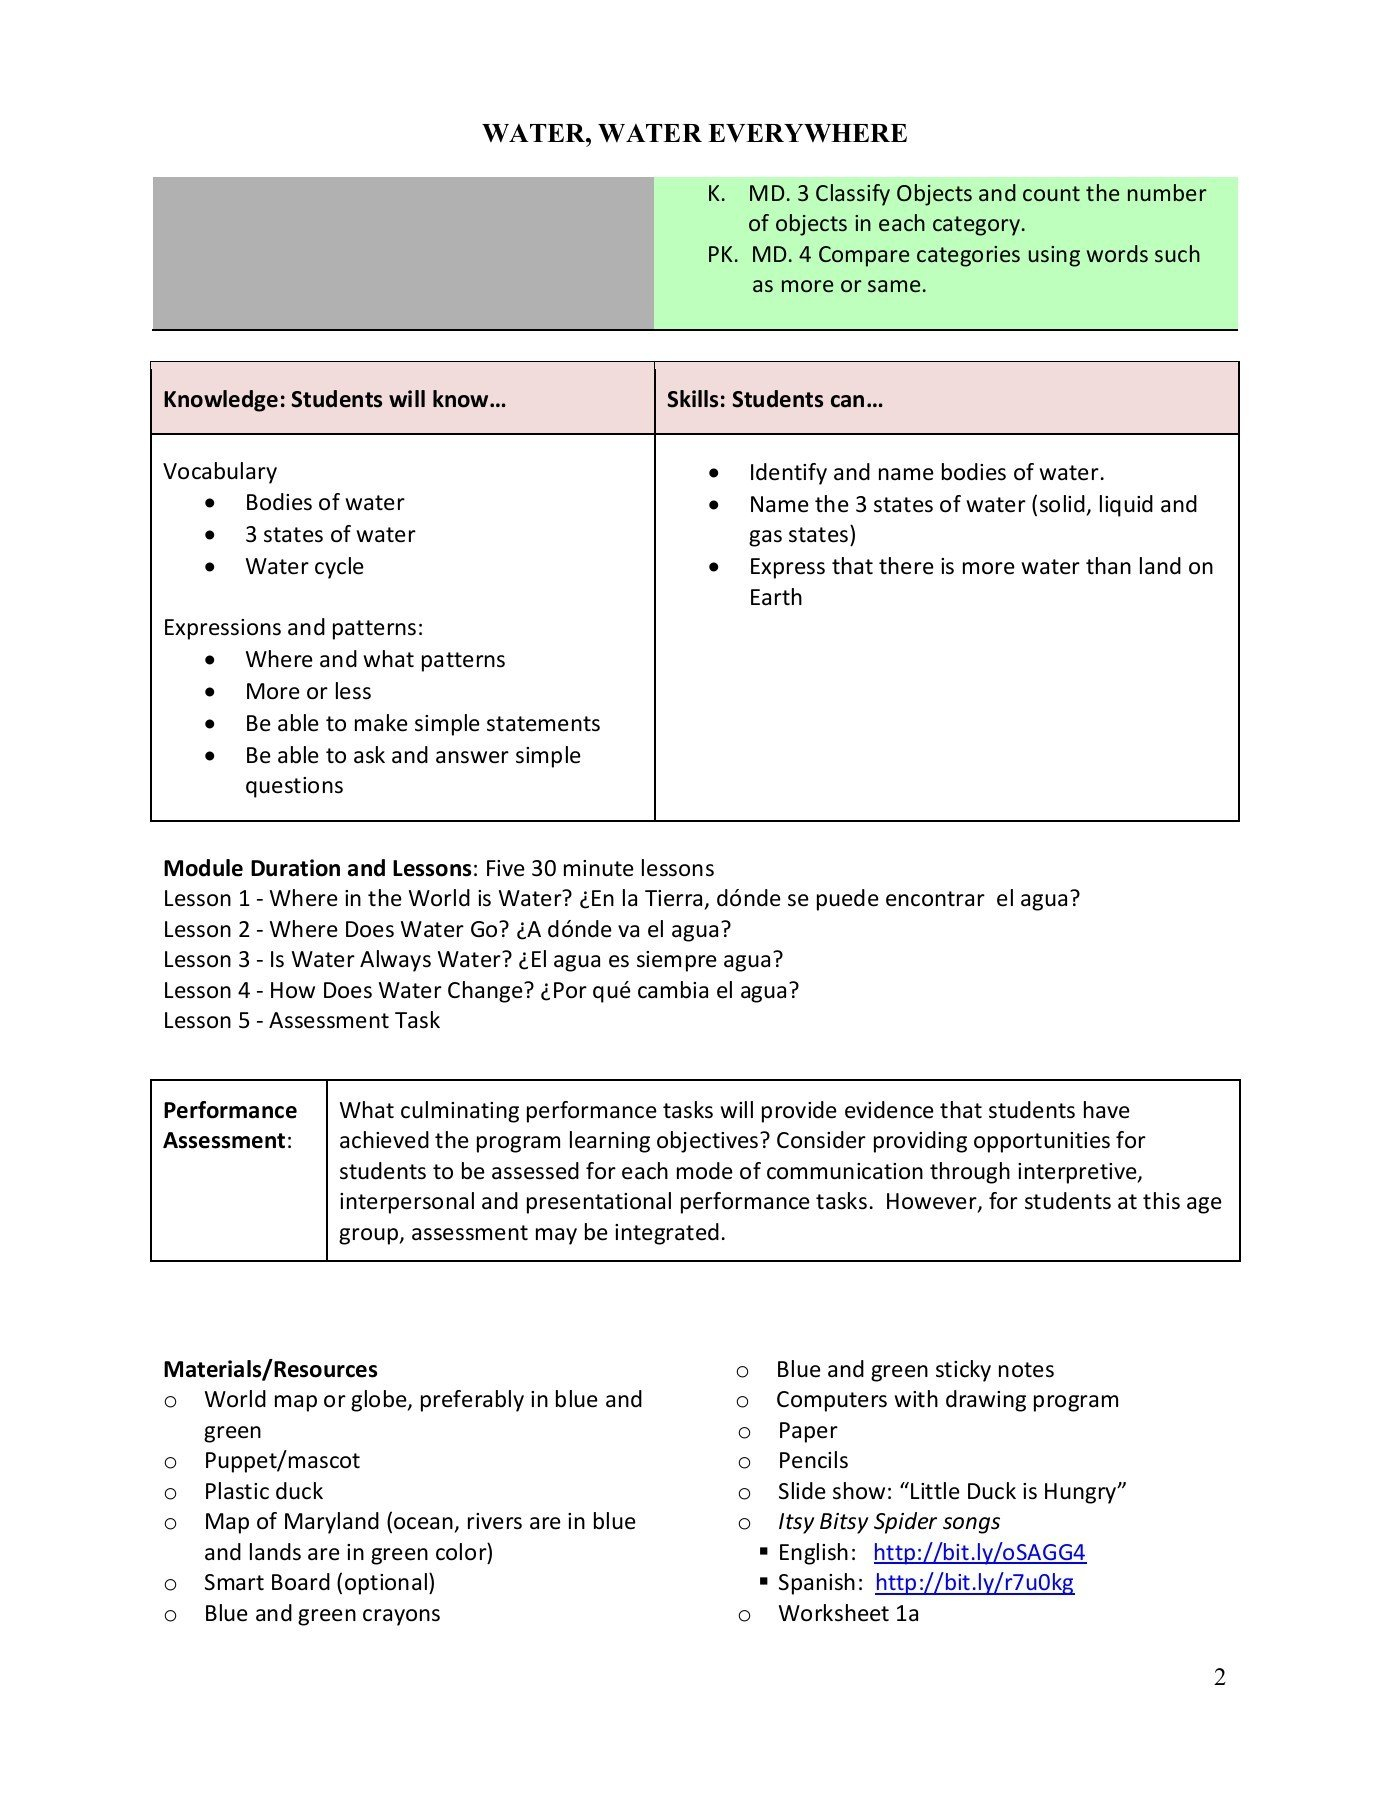 Water Water Everywhere Intended For Water Water Everywhere Worksheet Answers